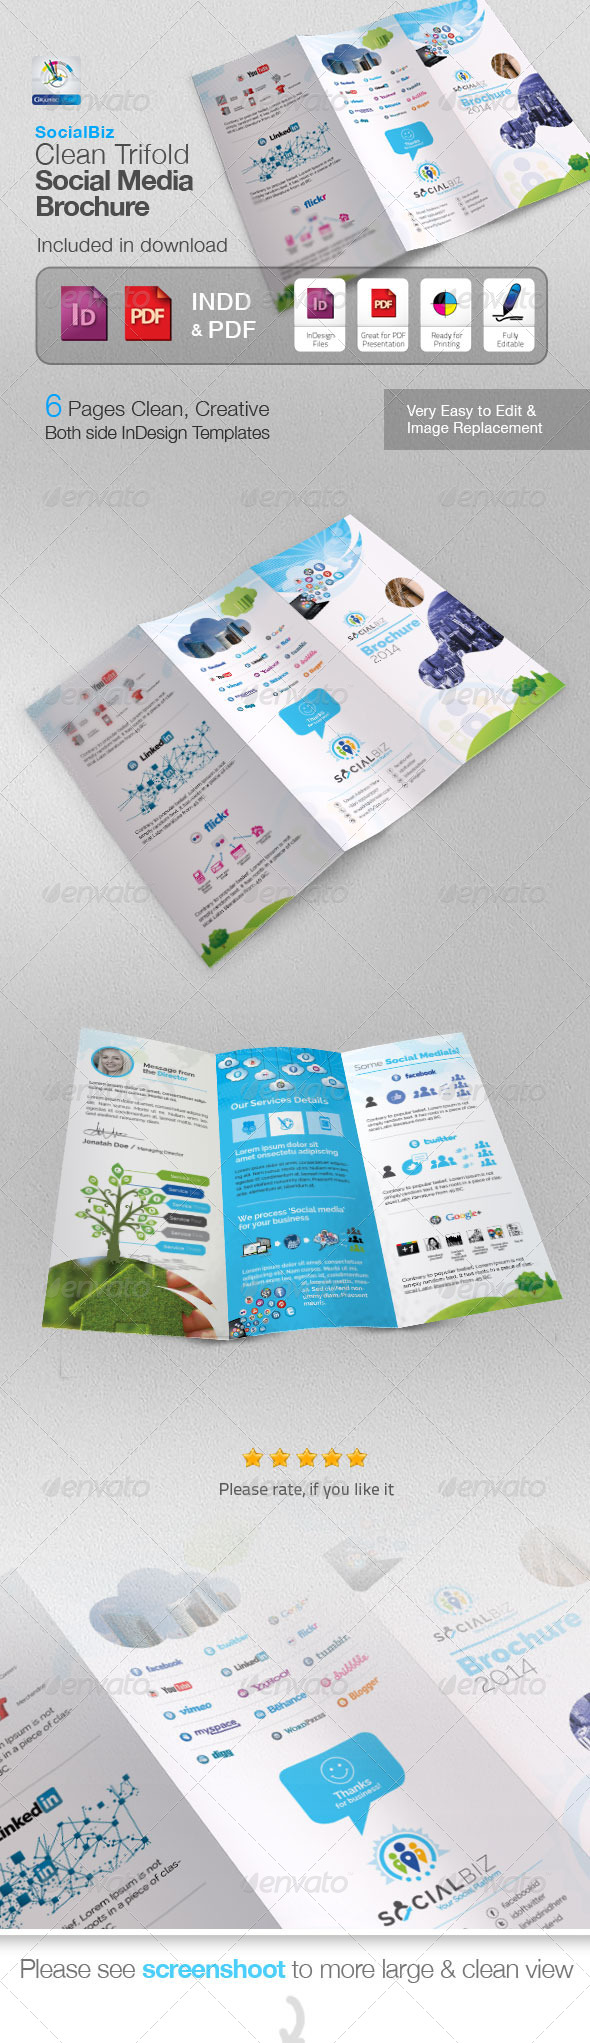 GraphicRiver SocialBiz Trifold Social Media Brochure 5756214